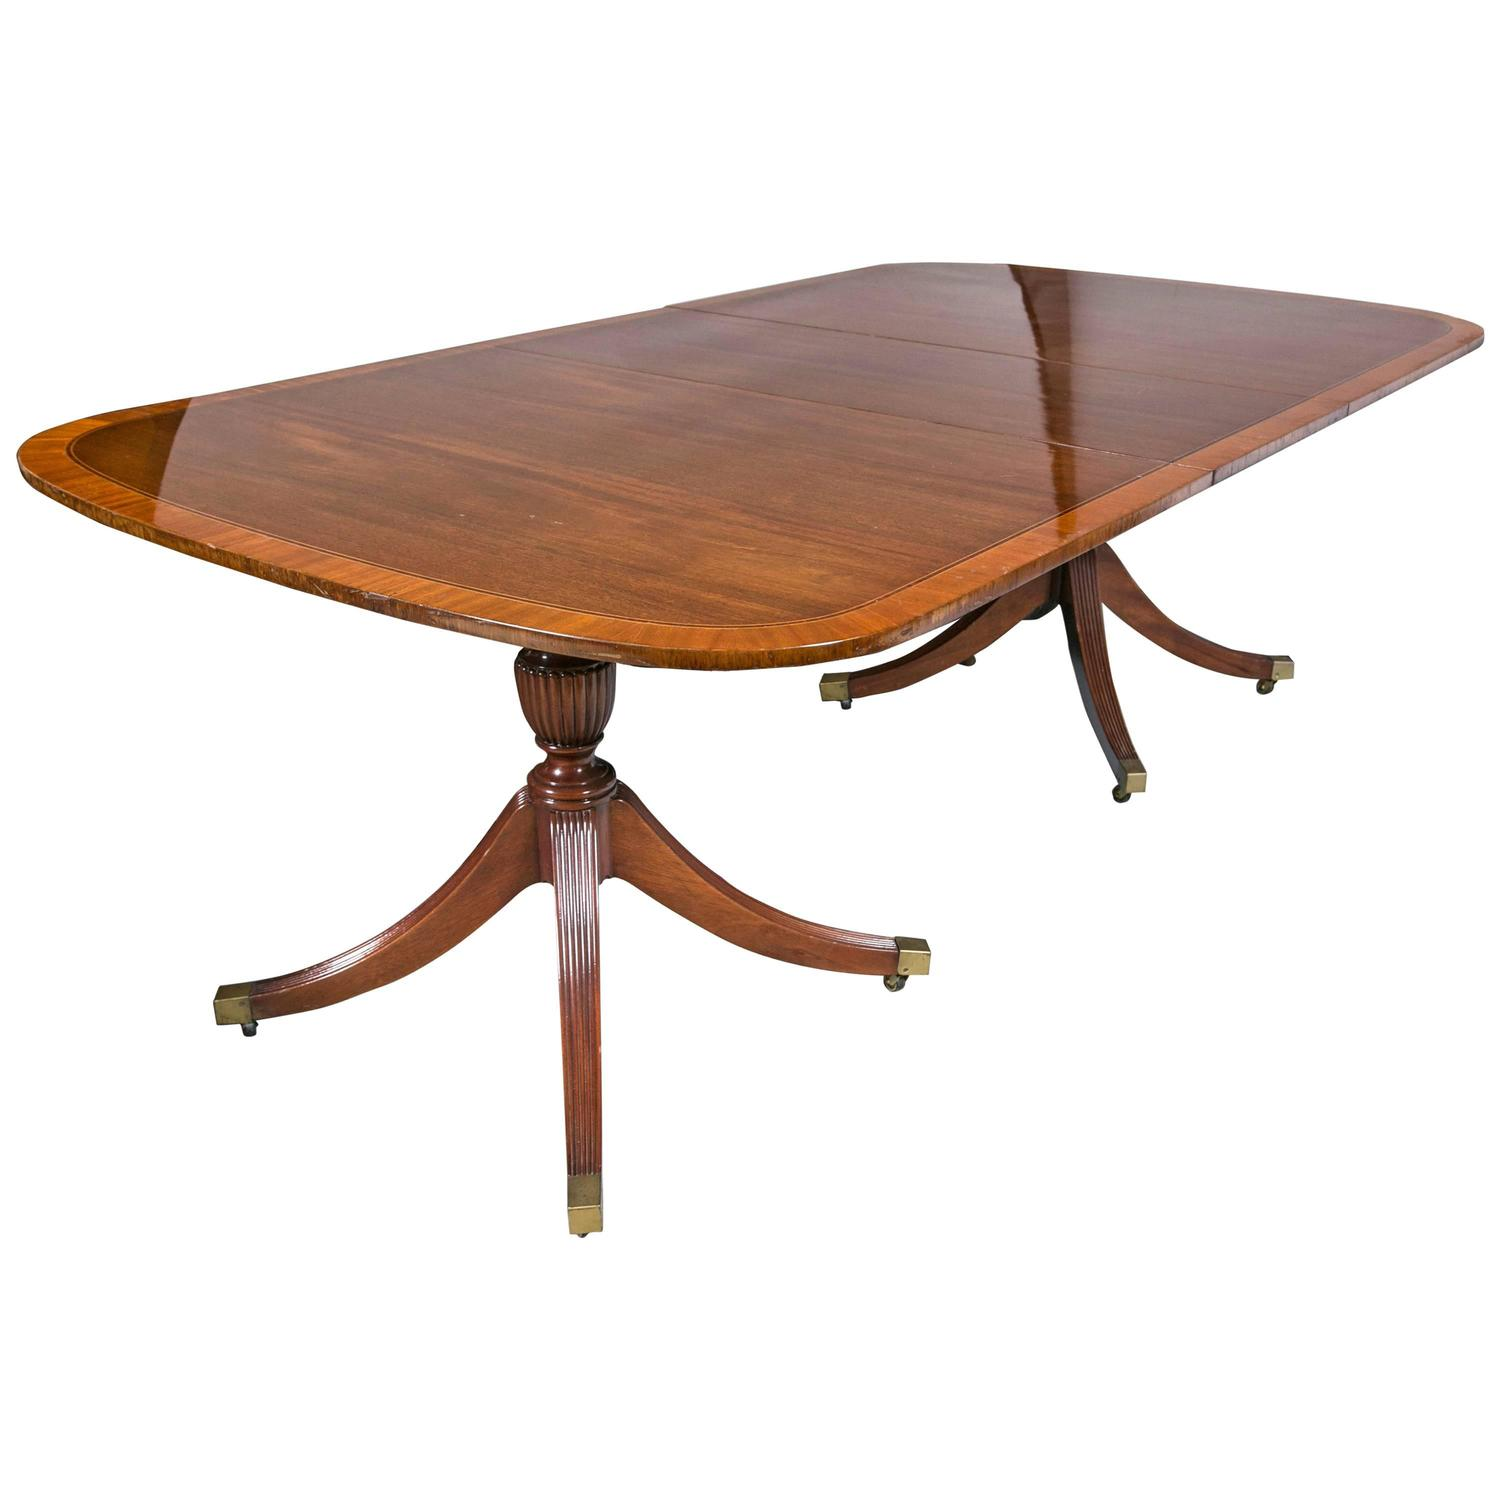 Georgian style mahogany banded dining table by baker with for Dining table with two leaves